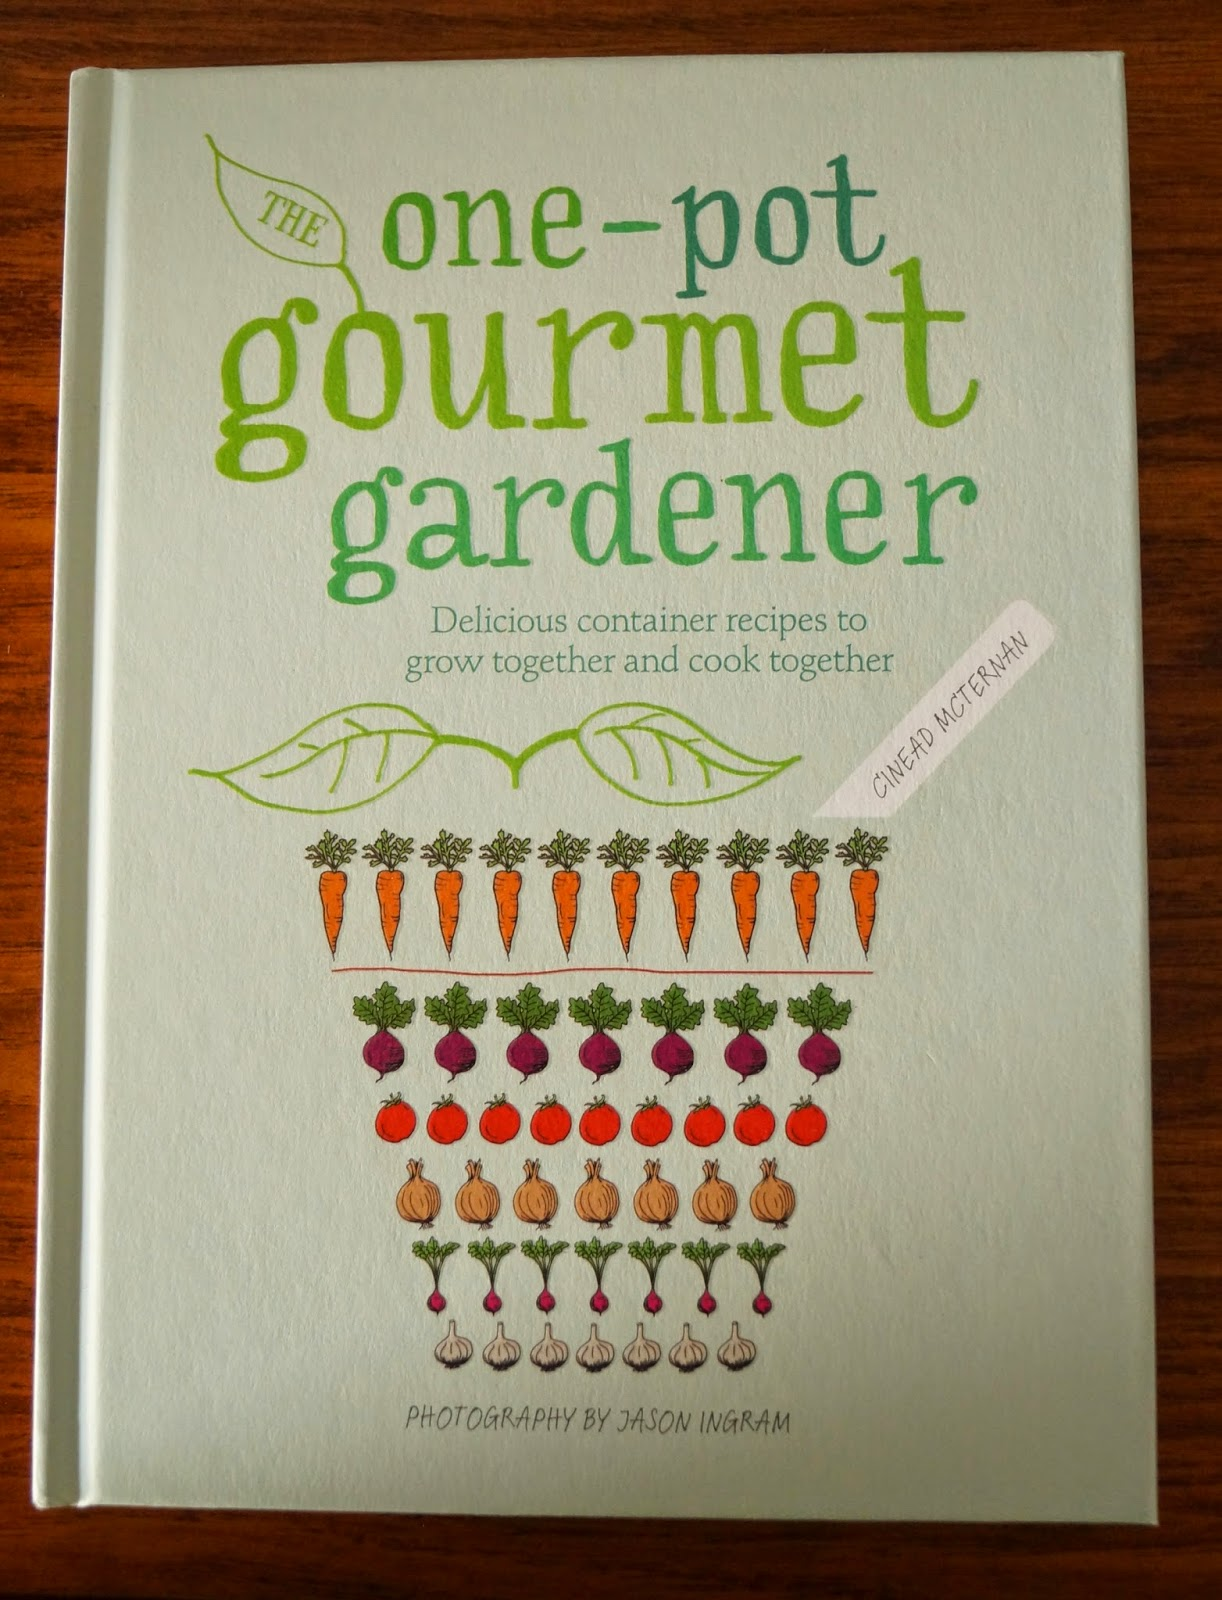 'the one-pot gourmet gardener' book~ growourown.blogspot.com